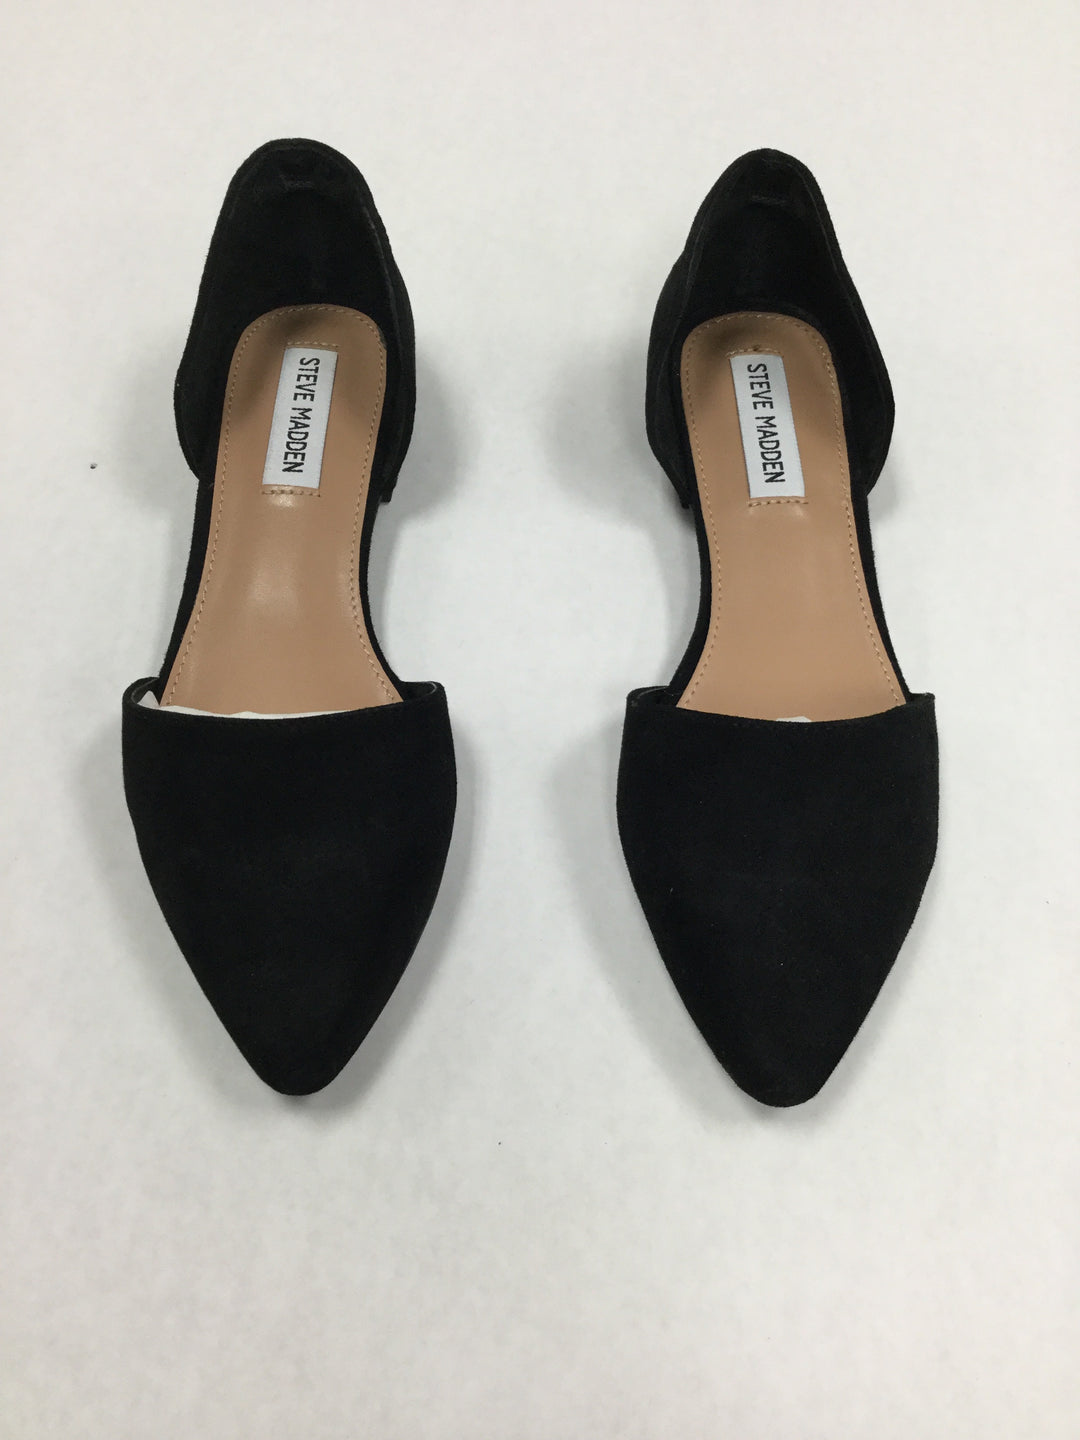 Primary Photo - BRAND: STEVE MADDEN <BR>STYLE: SHOES FLATS <BR>COLOR: BLACK <BR>SIZE: 7.5 <BR>SKU: 155-155220-3634